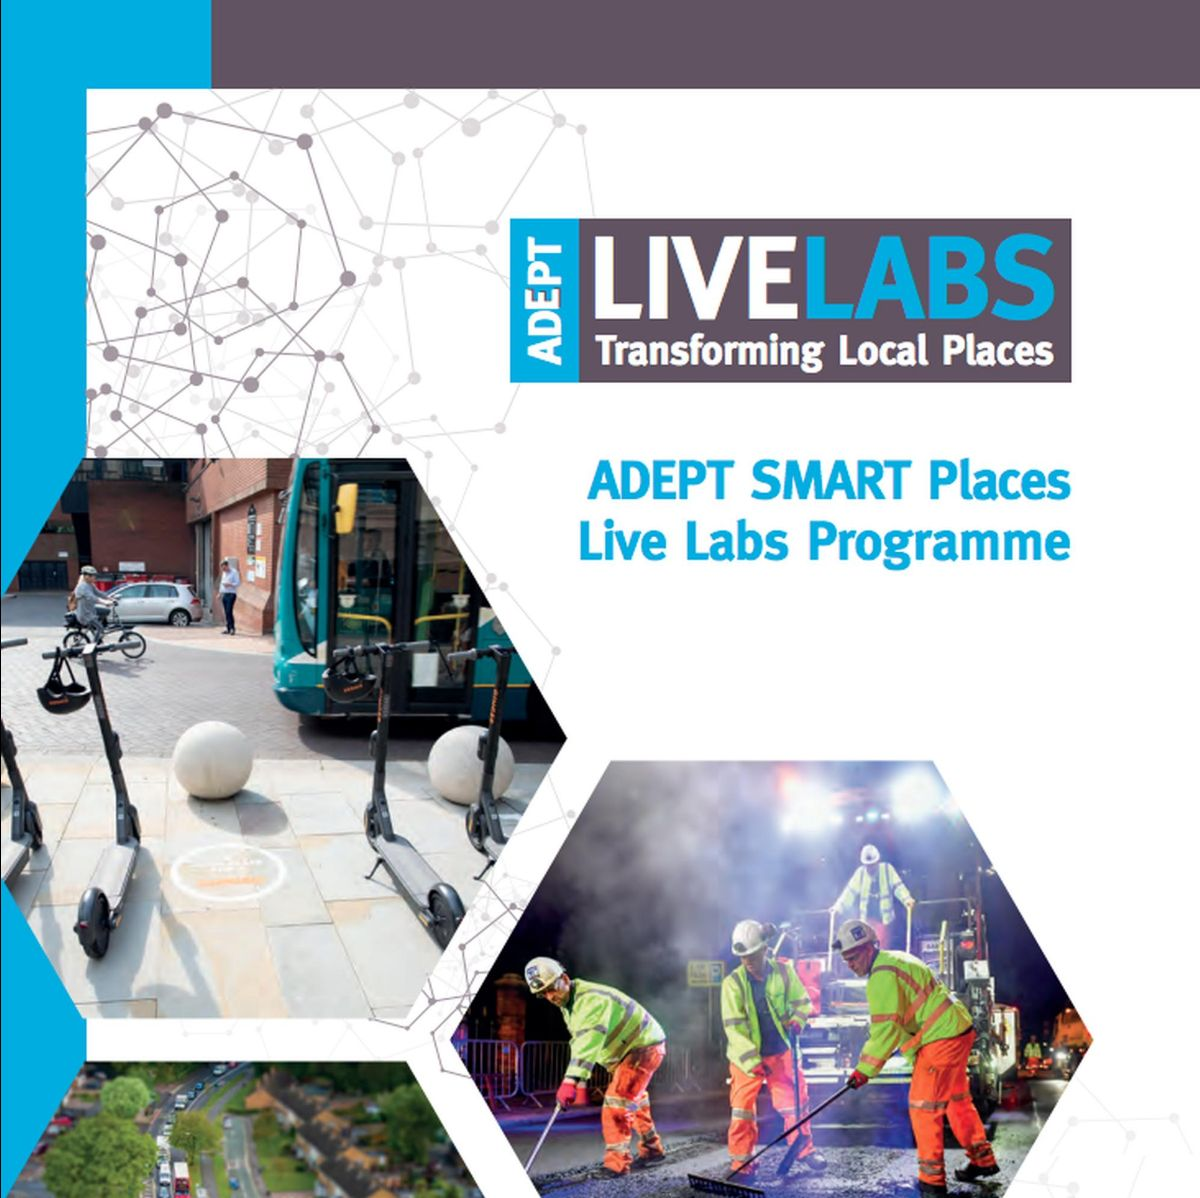 Case studies published from ADEPT Live Labs project